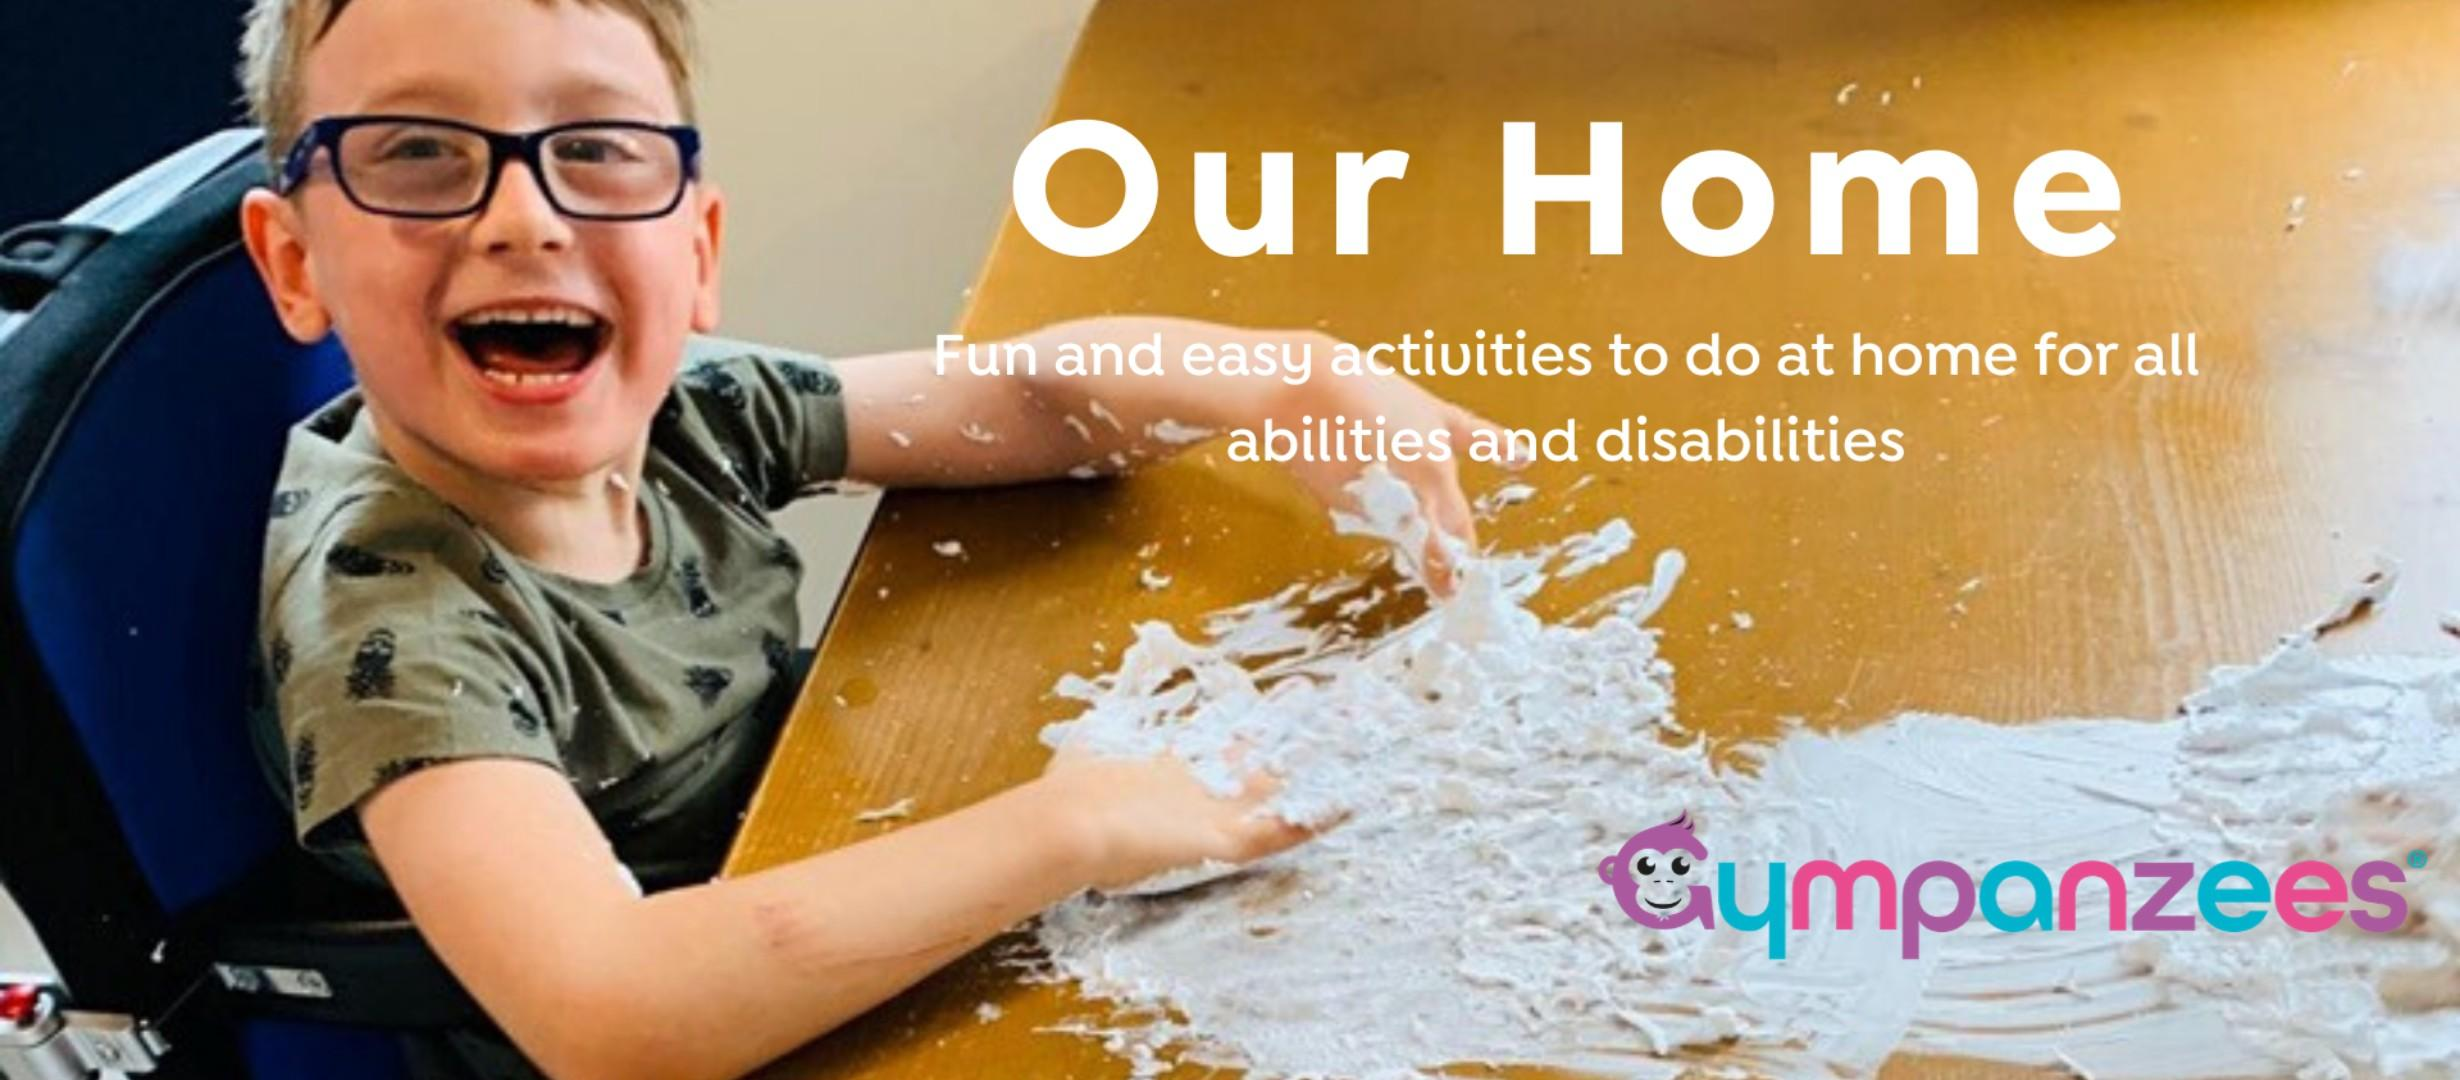 young boy in wheelchair looking very happy doing a craft, text reads 'our home, fun and easy activities to do at home for all abilities and disabilities'